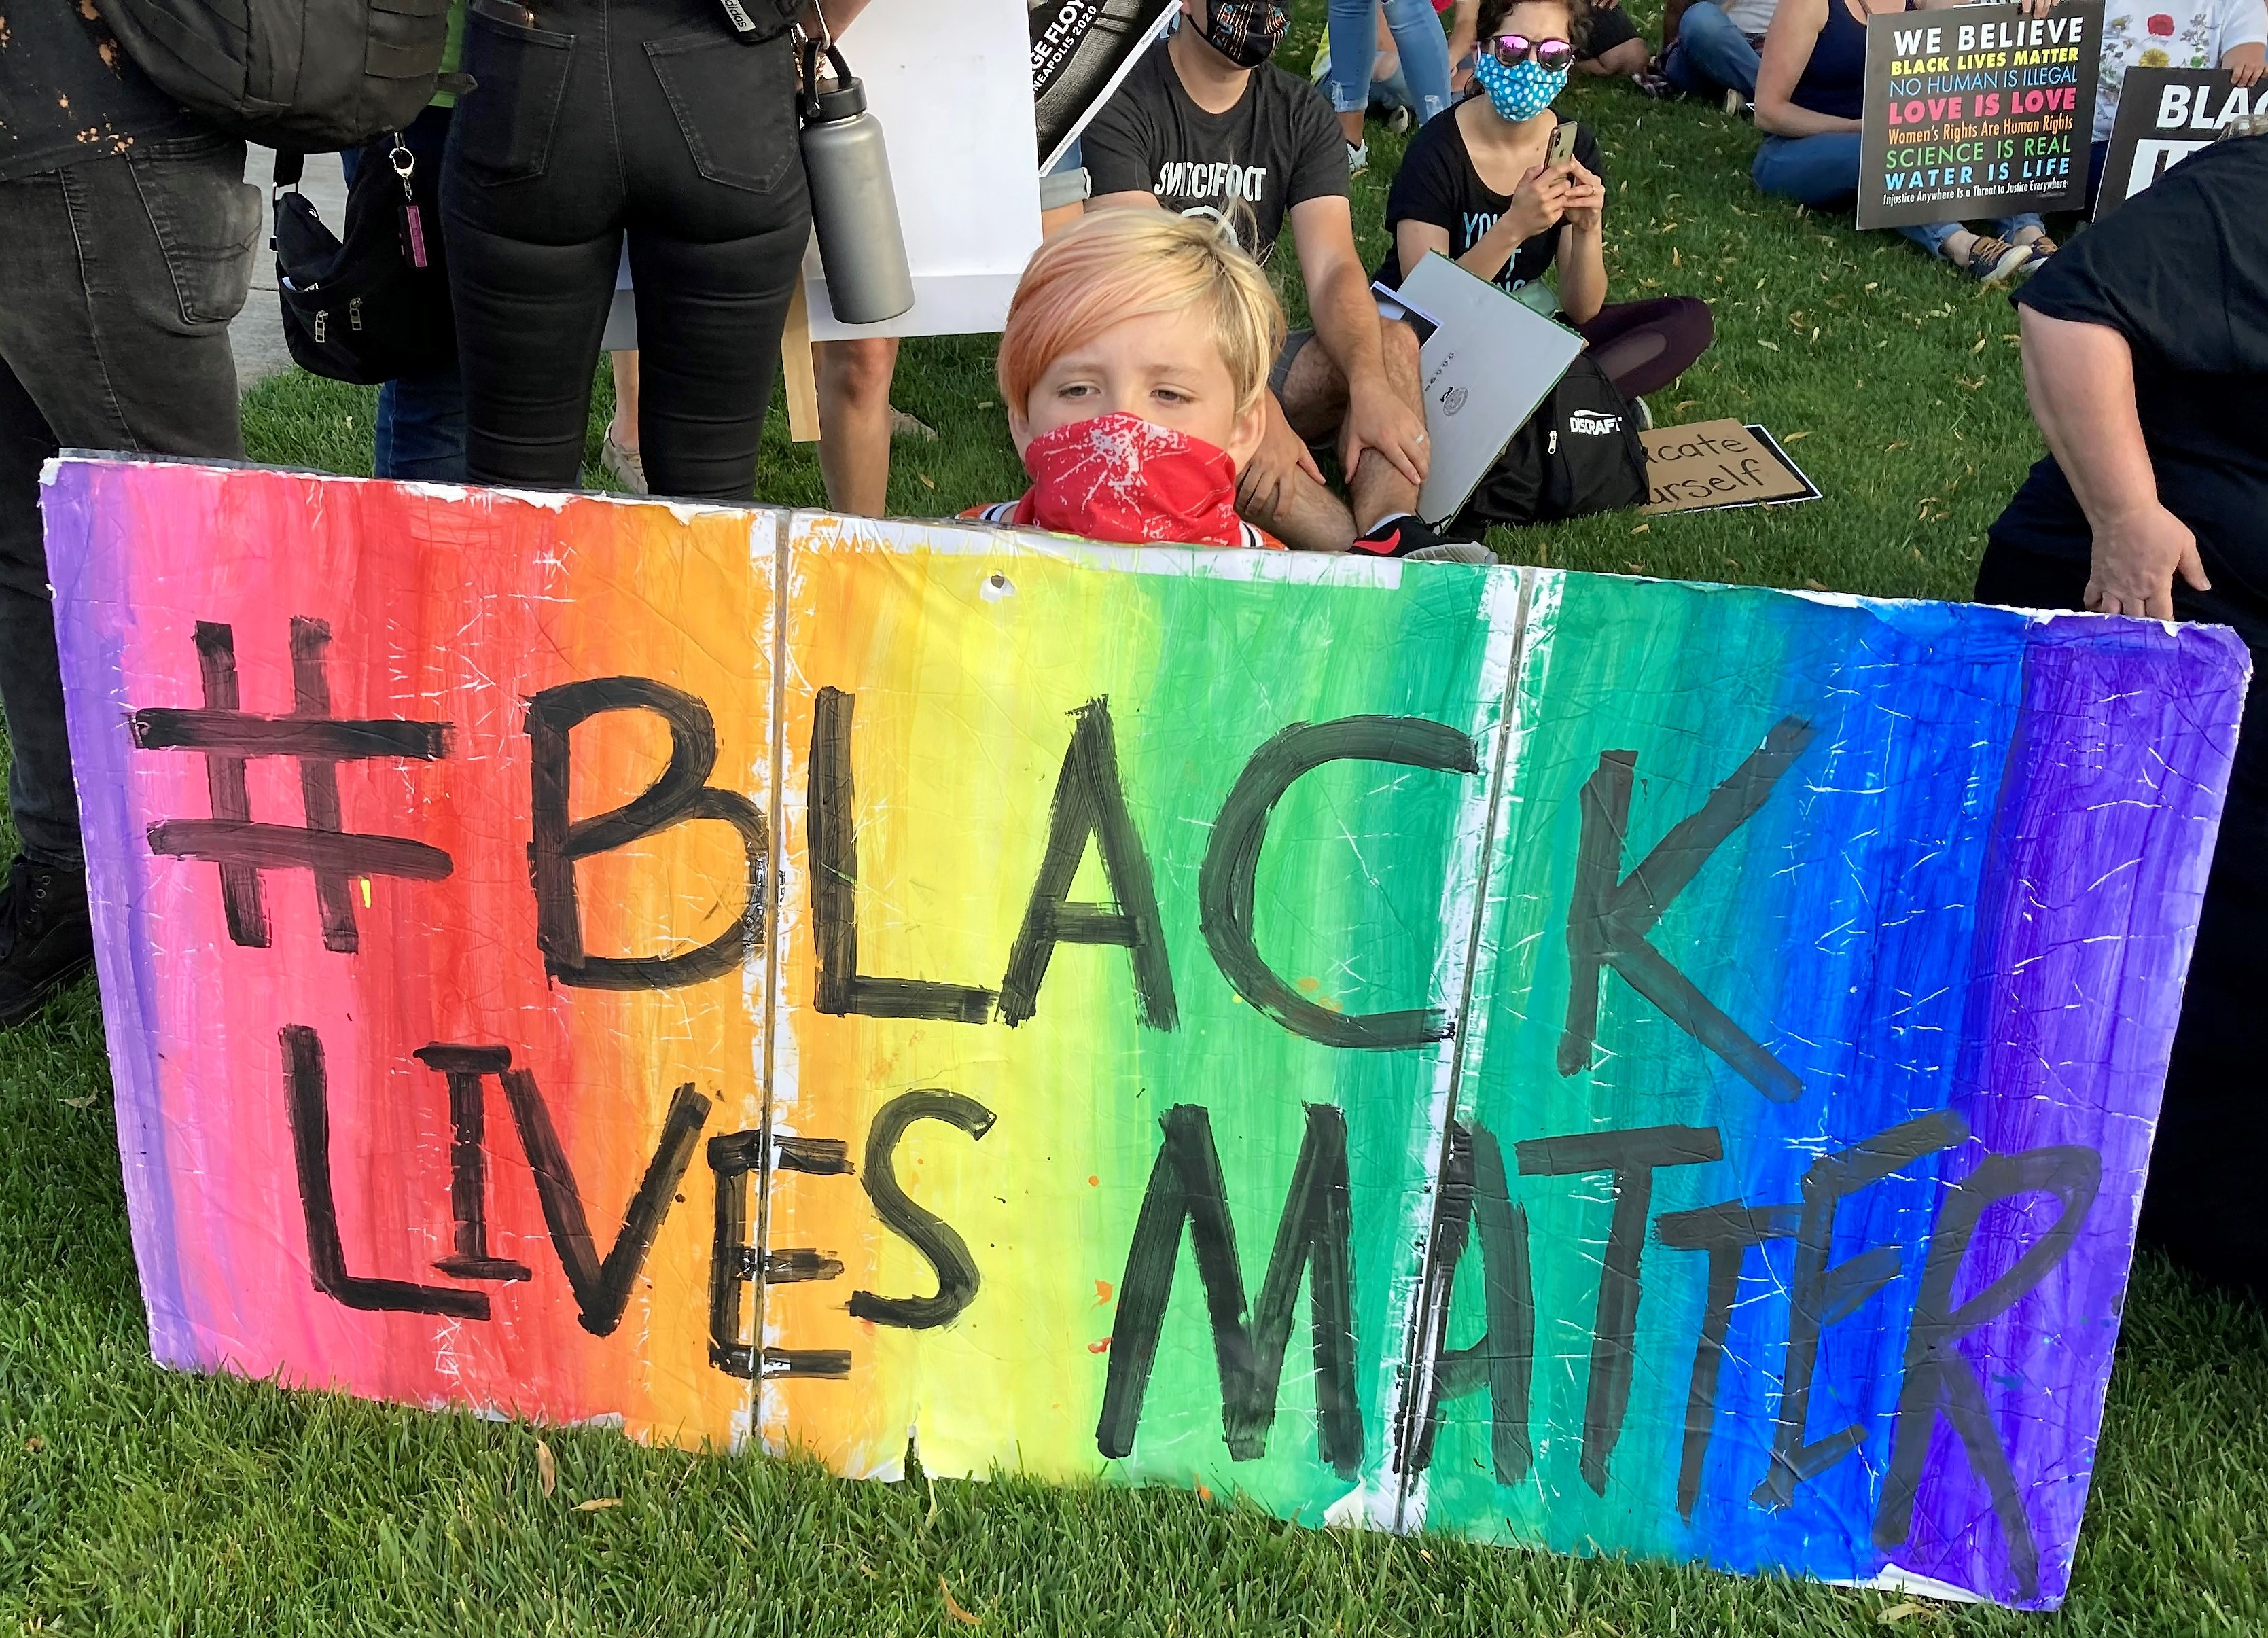 Young person from Milwaukie UCC with Black Lives Matter sign, 8/28/20